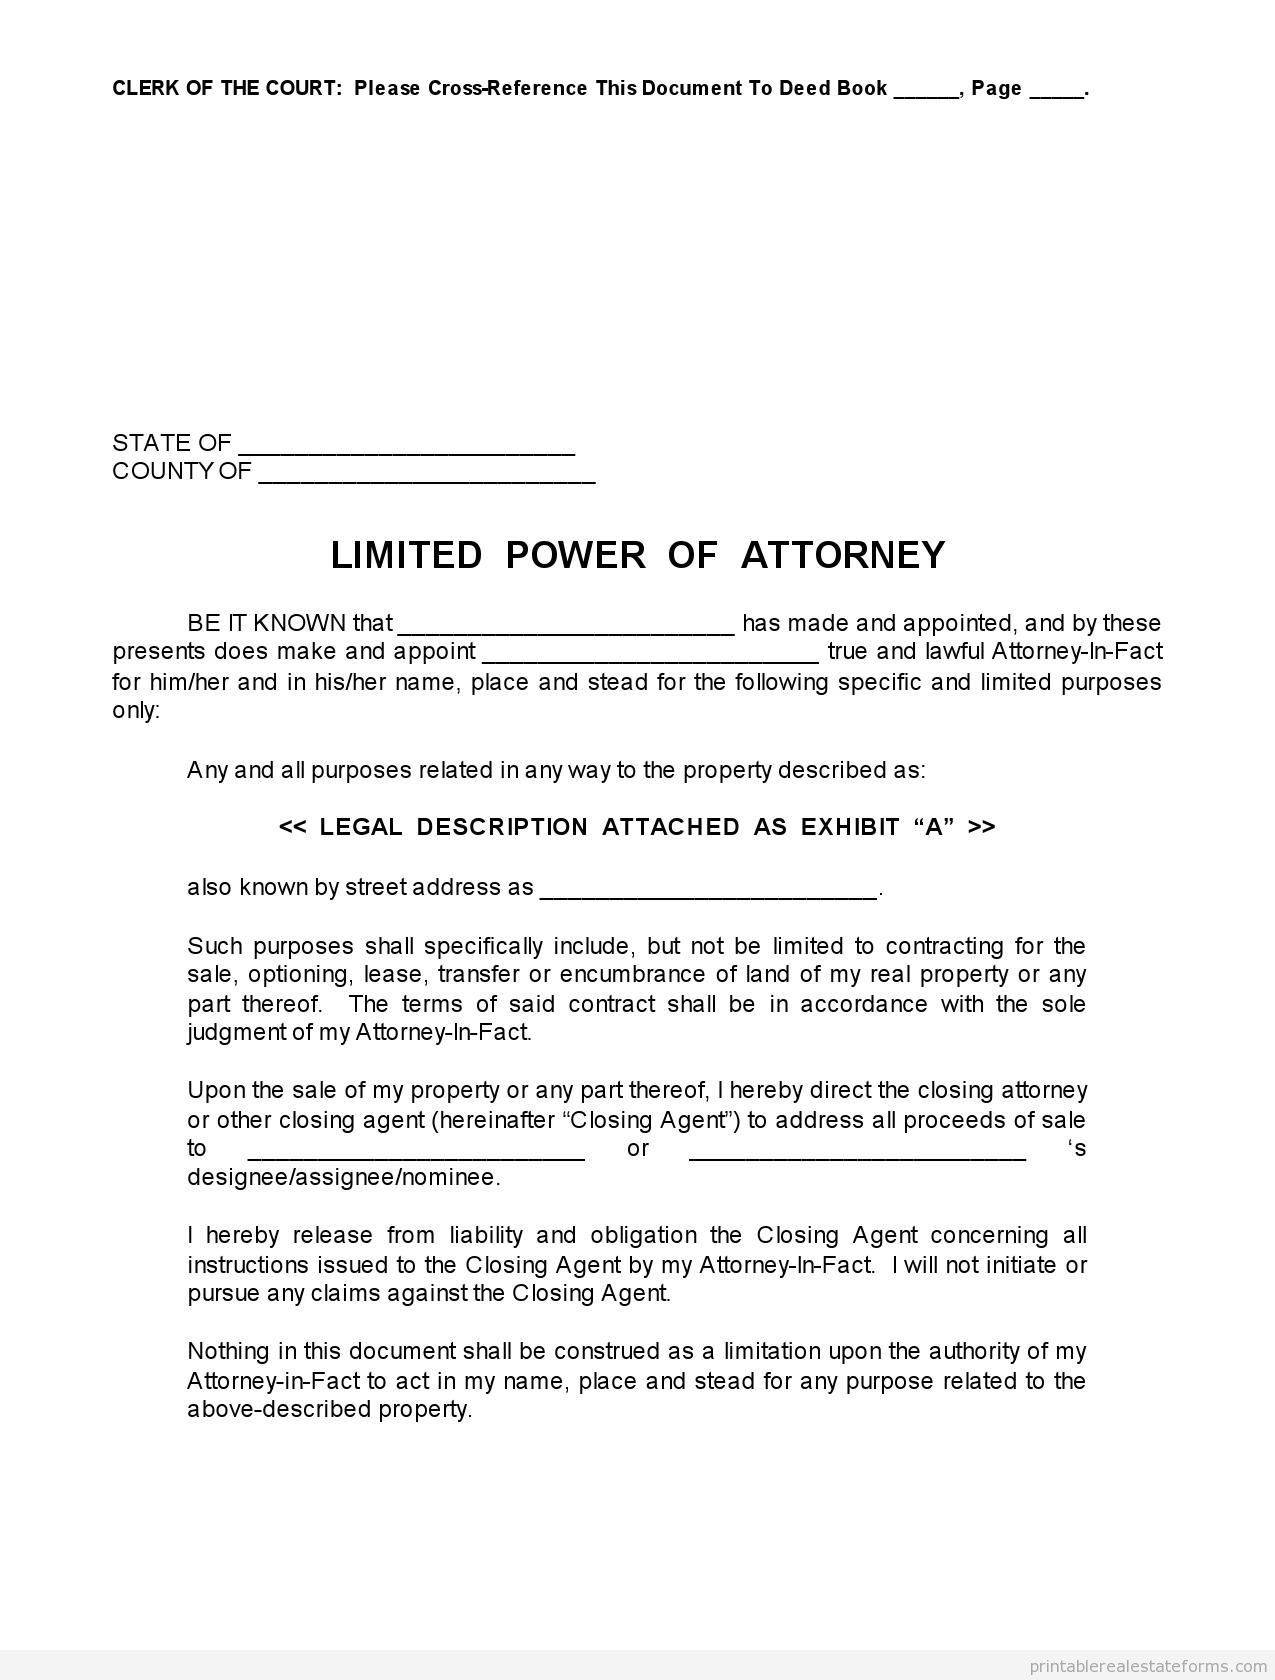 Sample Limited Power Of Attorney Forms